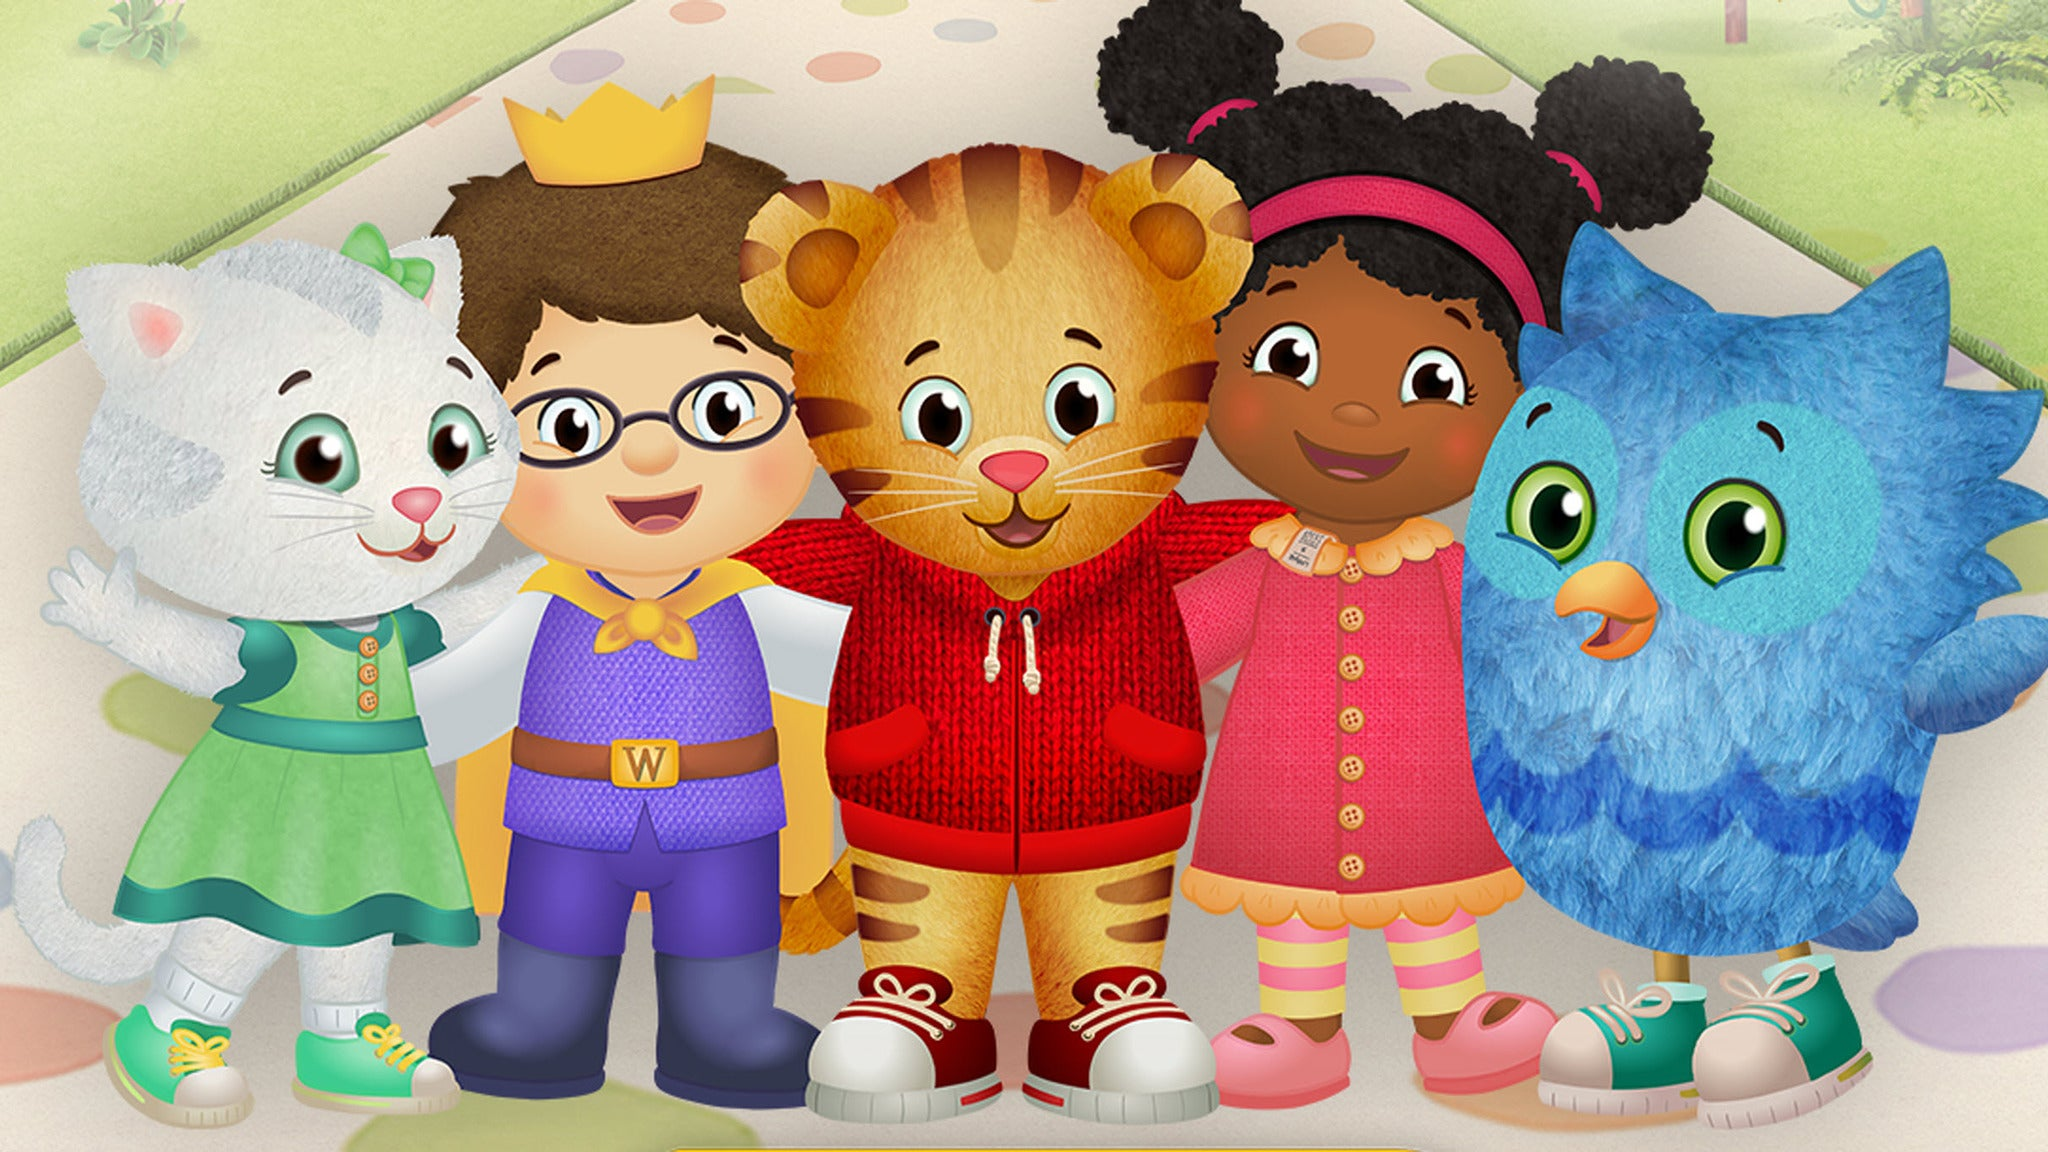 Daniel Tiger's Neighborhood at Community Arts Center - PA